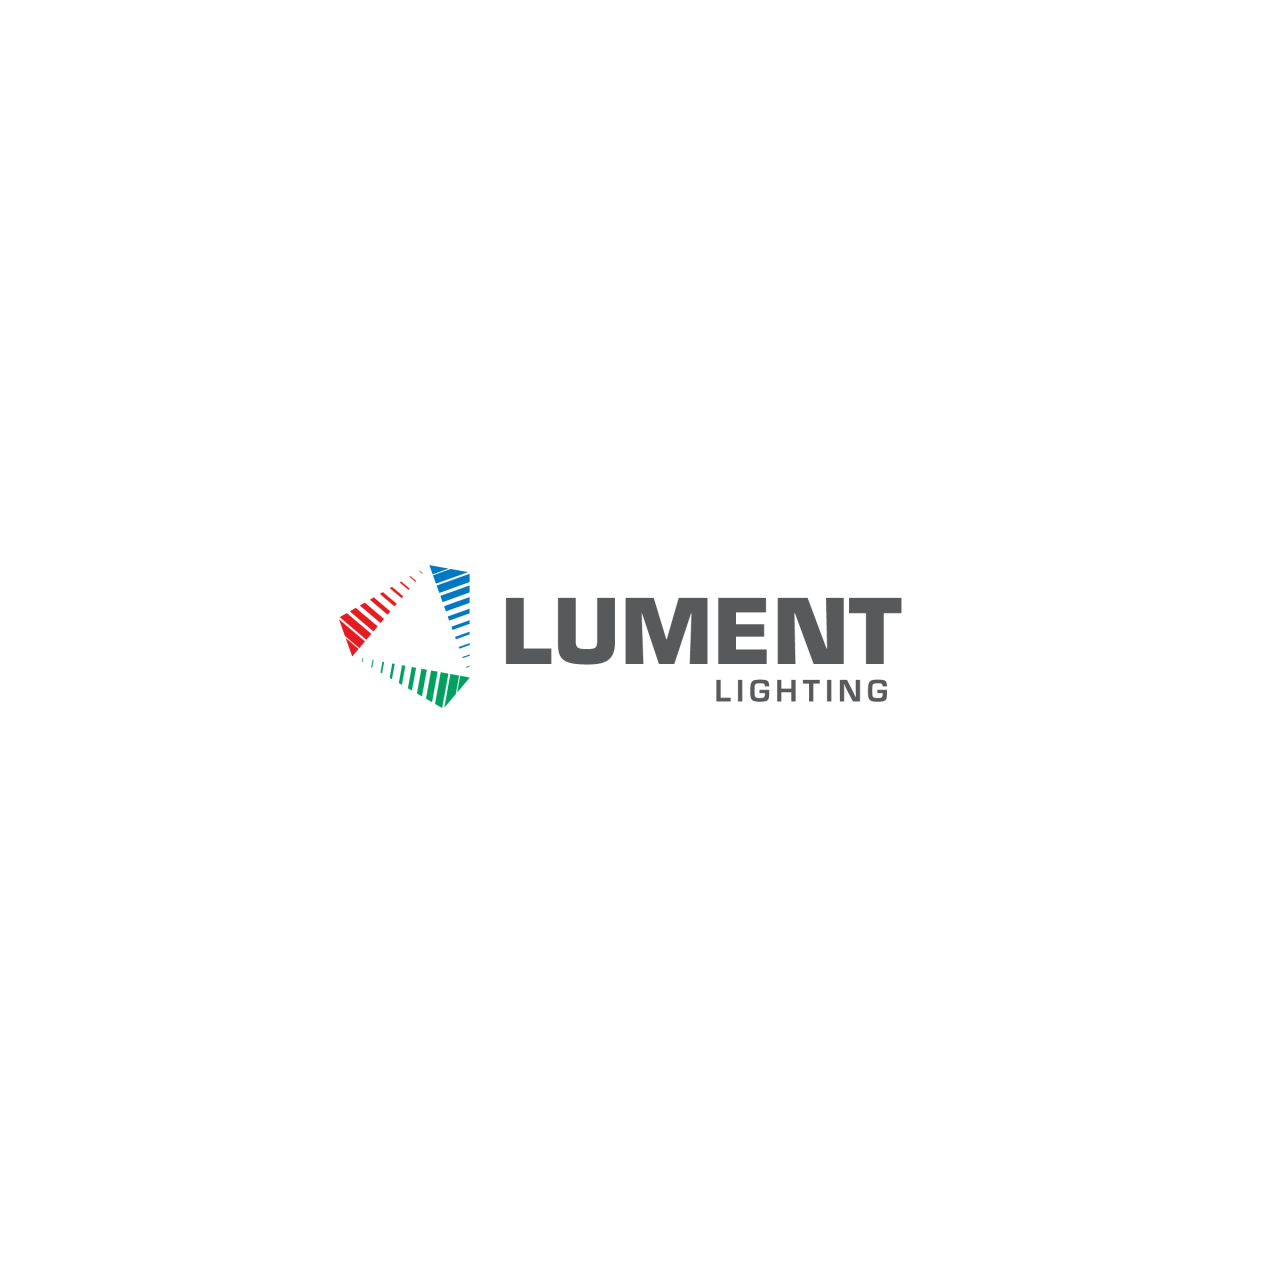 Image of Lument Lighting logo